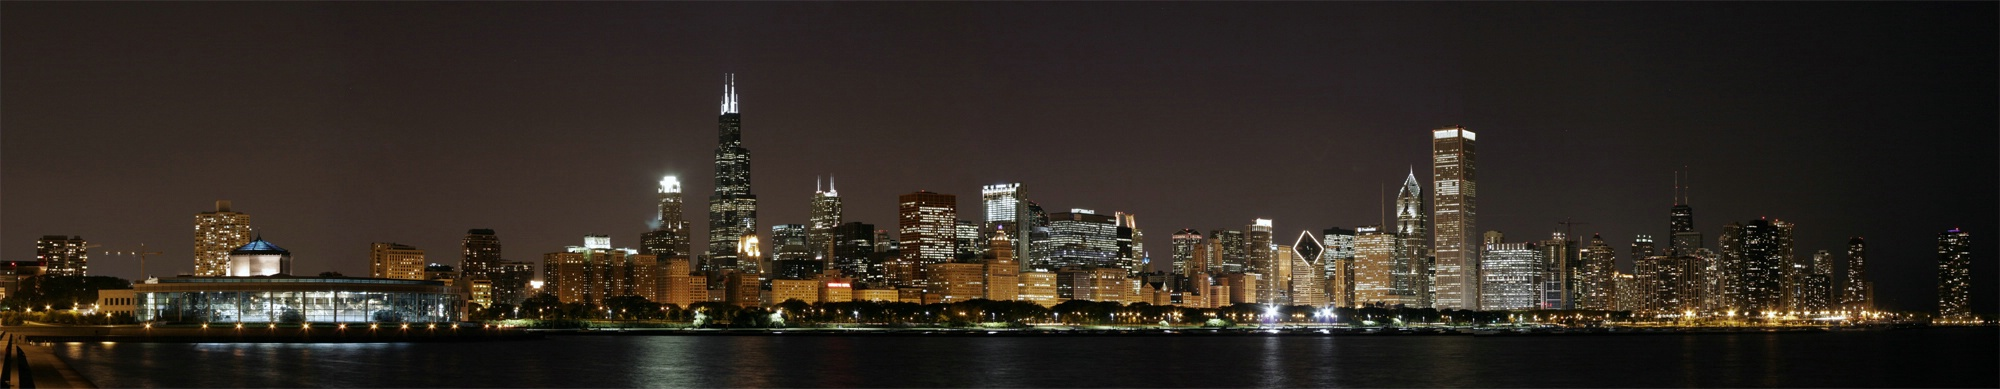 Evening Chicago Cityscape